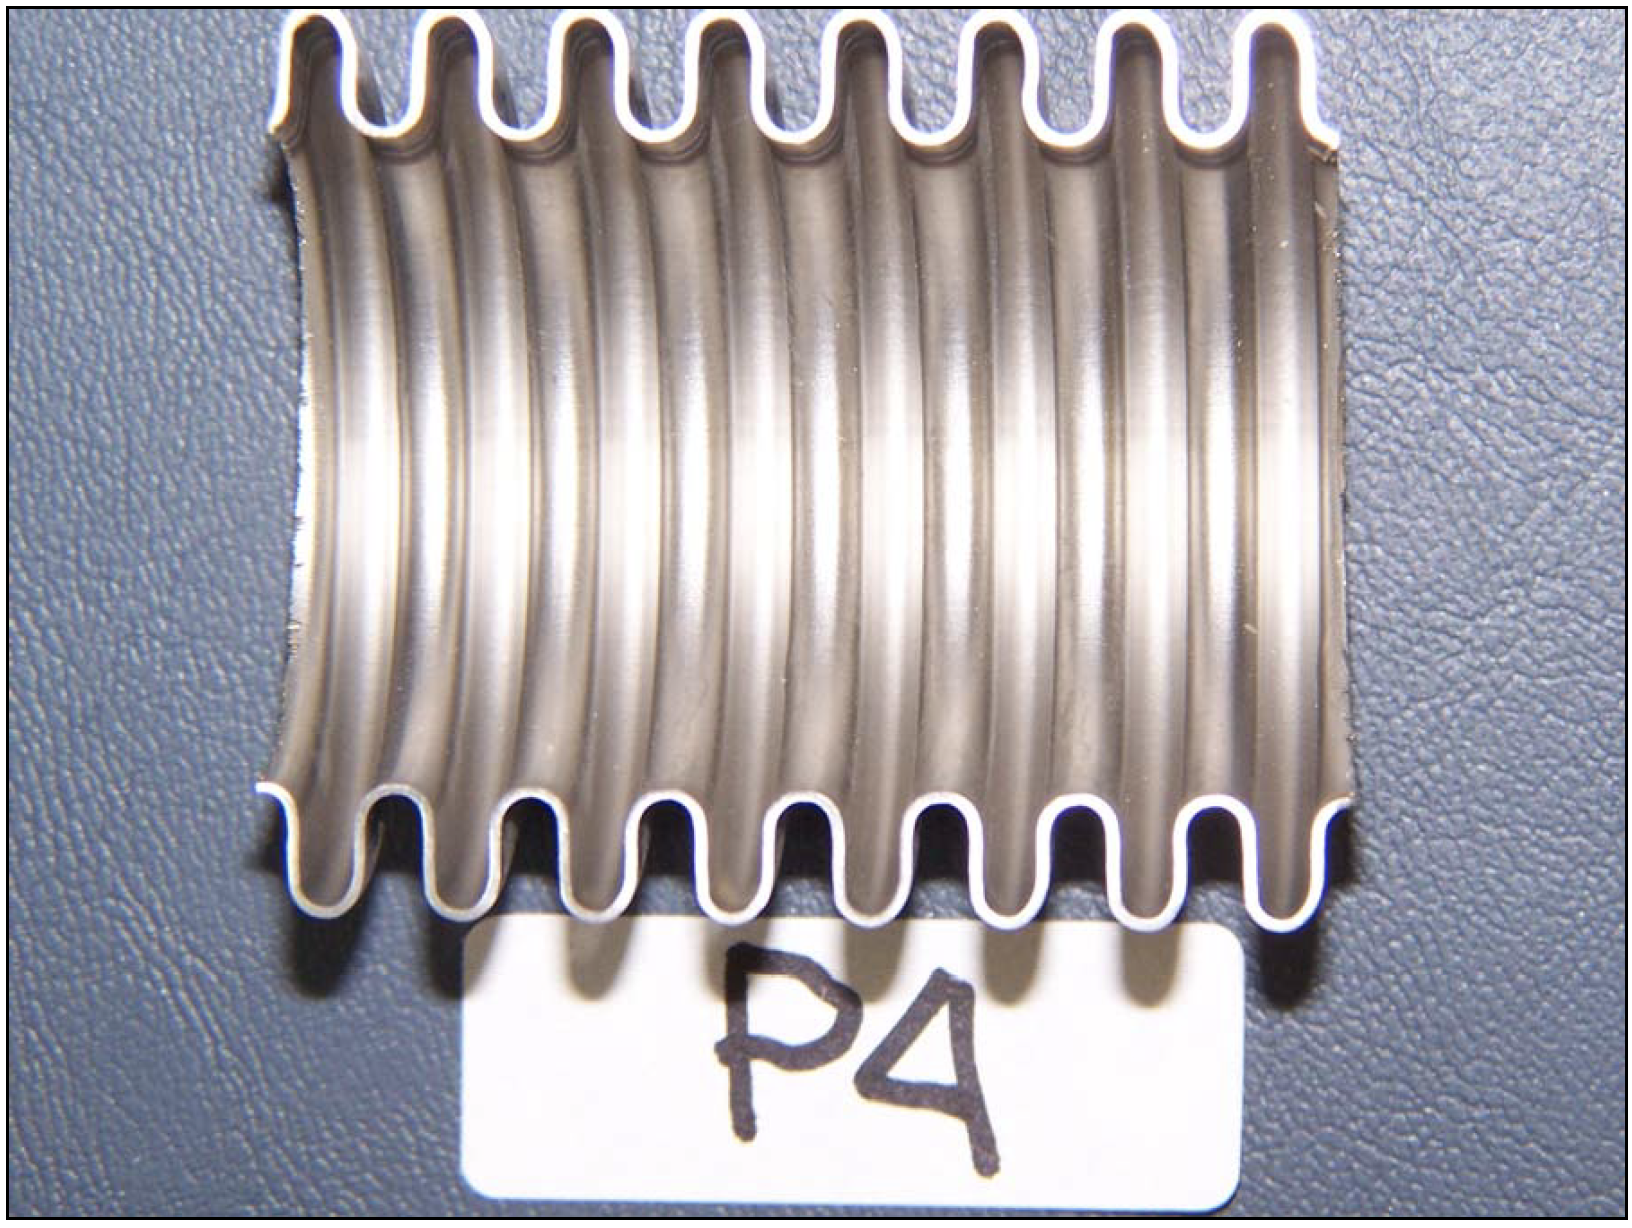 Penflex P4 heavier wall thickness makes metal hose corrosion resistant